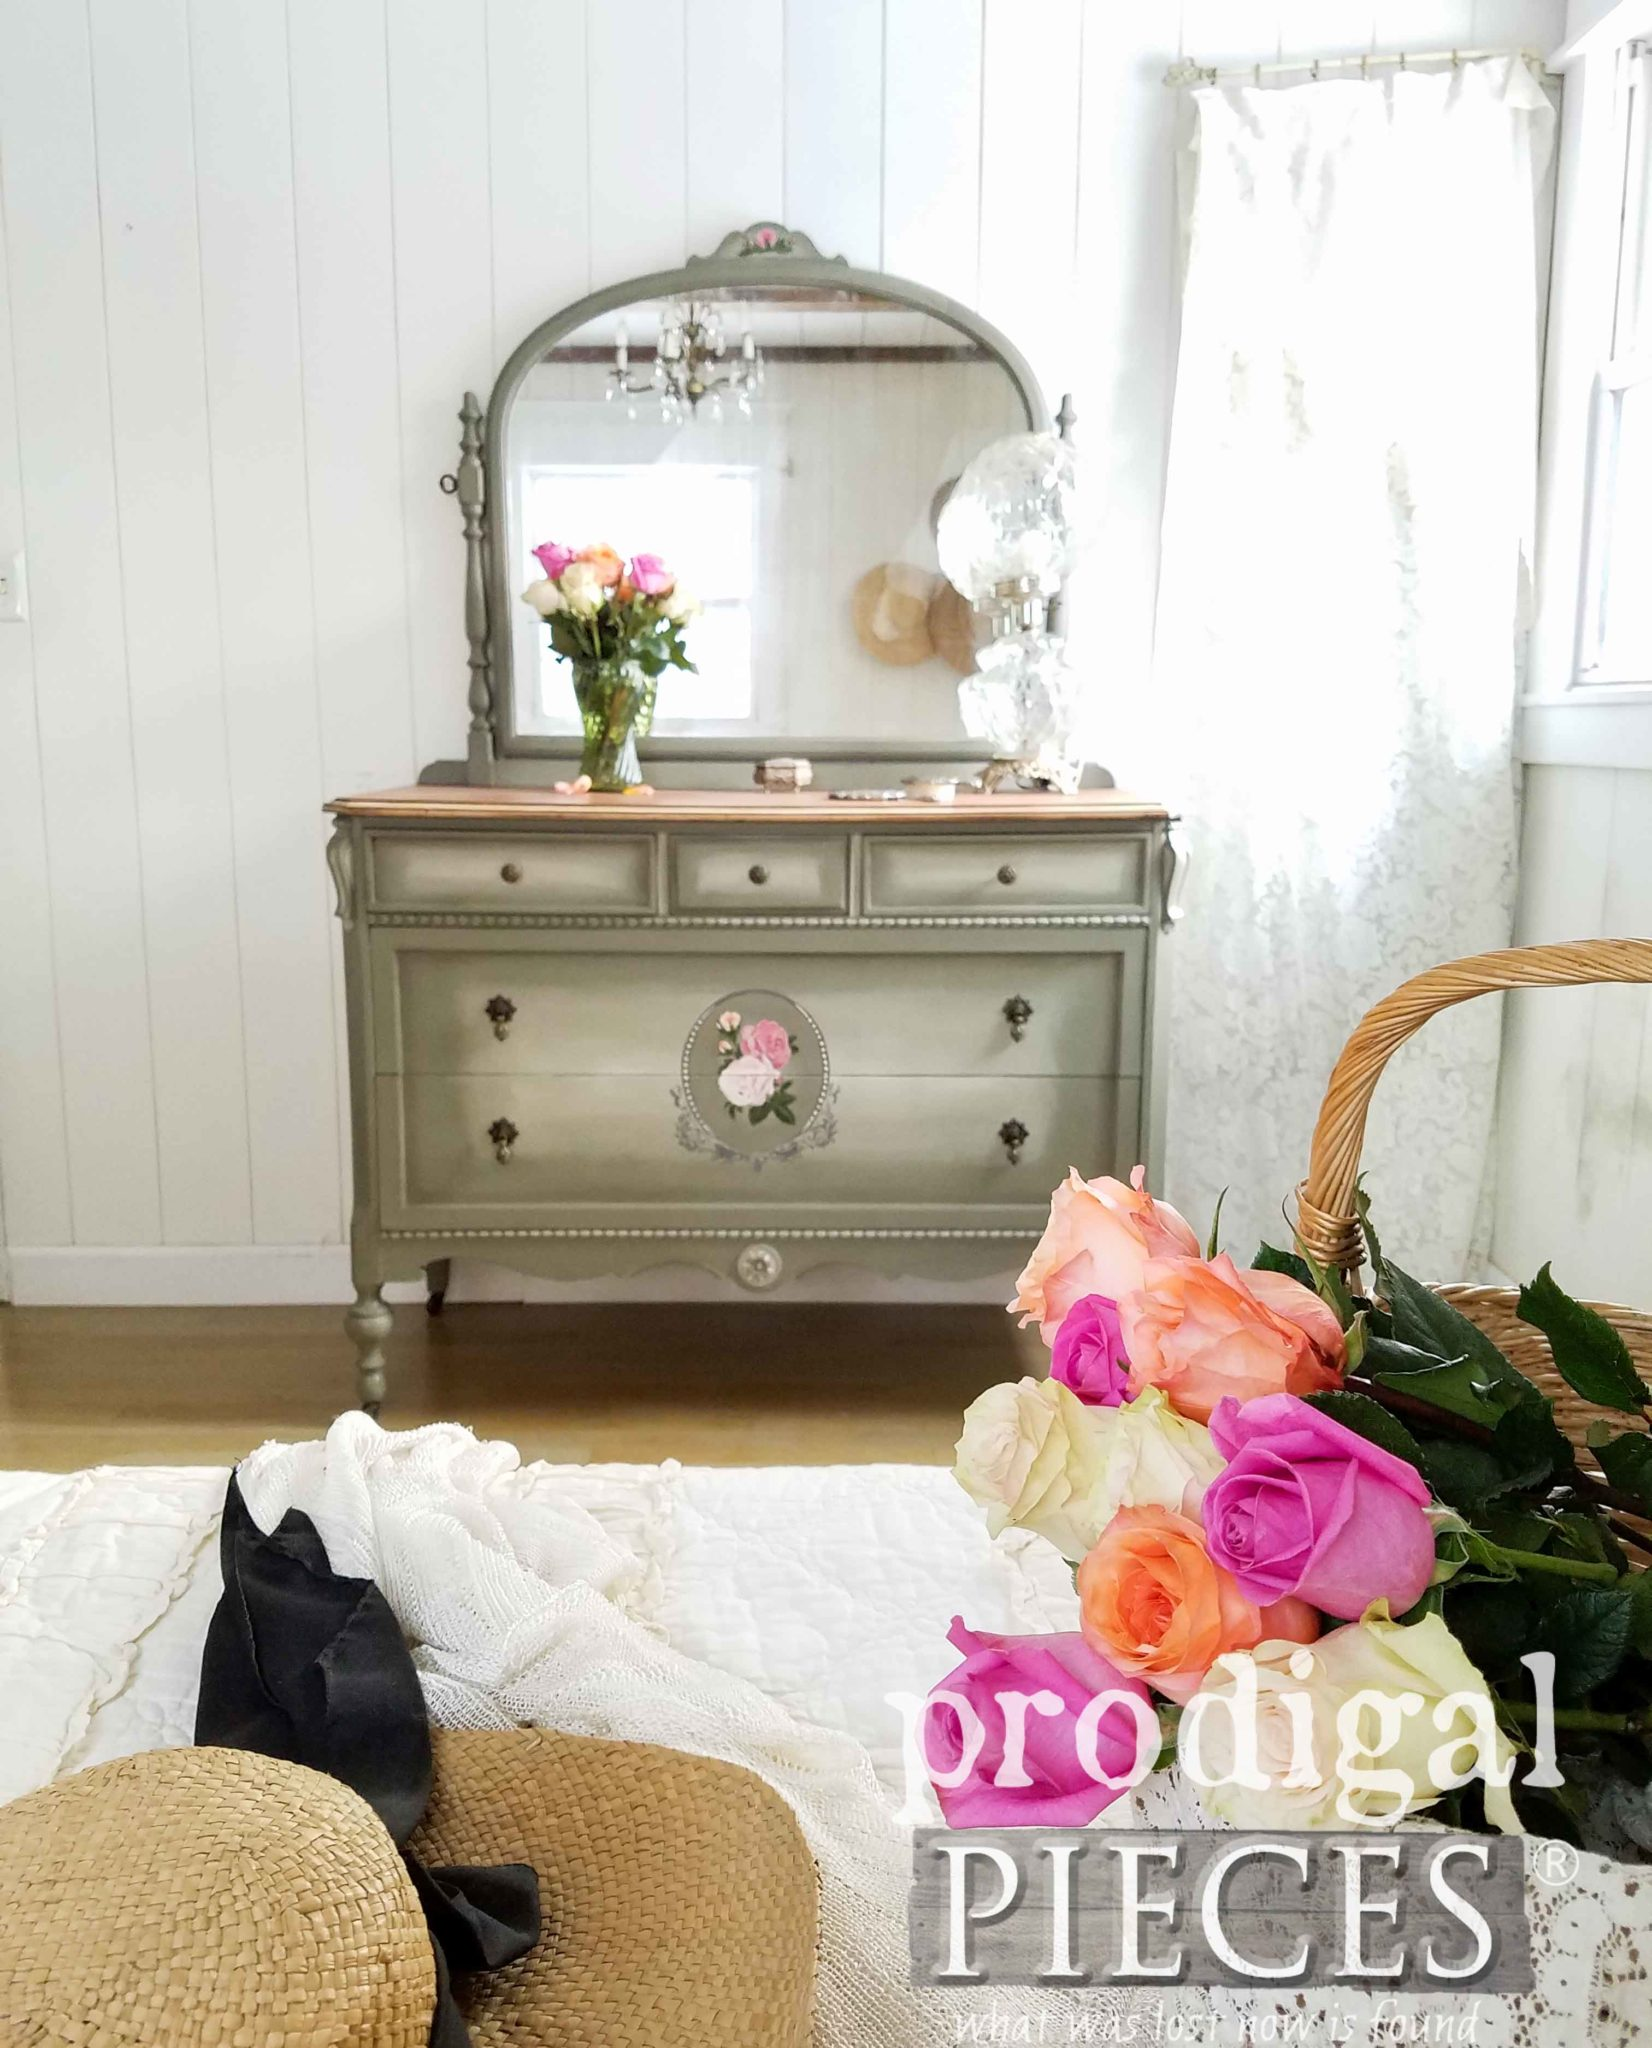 Cottage Style Bedroom with Antique Dresser Made New by Larissa of Prodigal Pieces | prodigalpieces.com